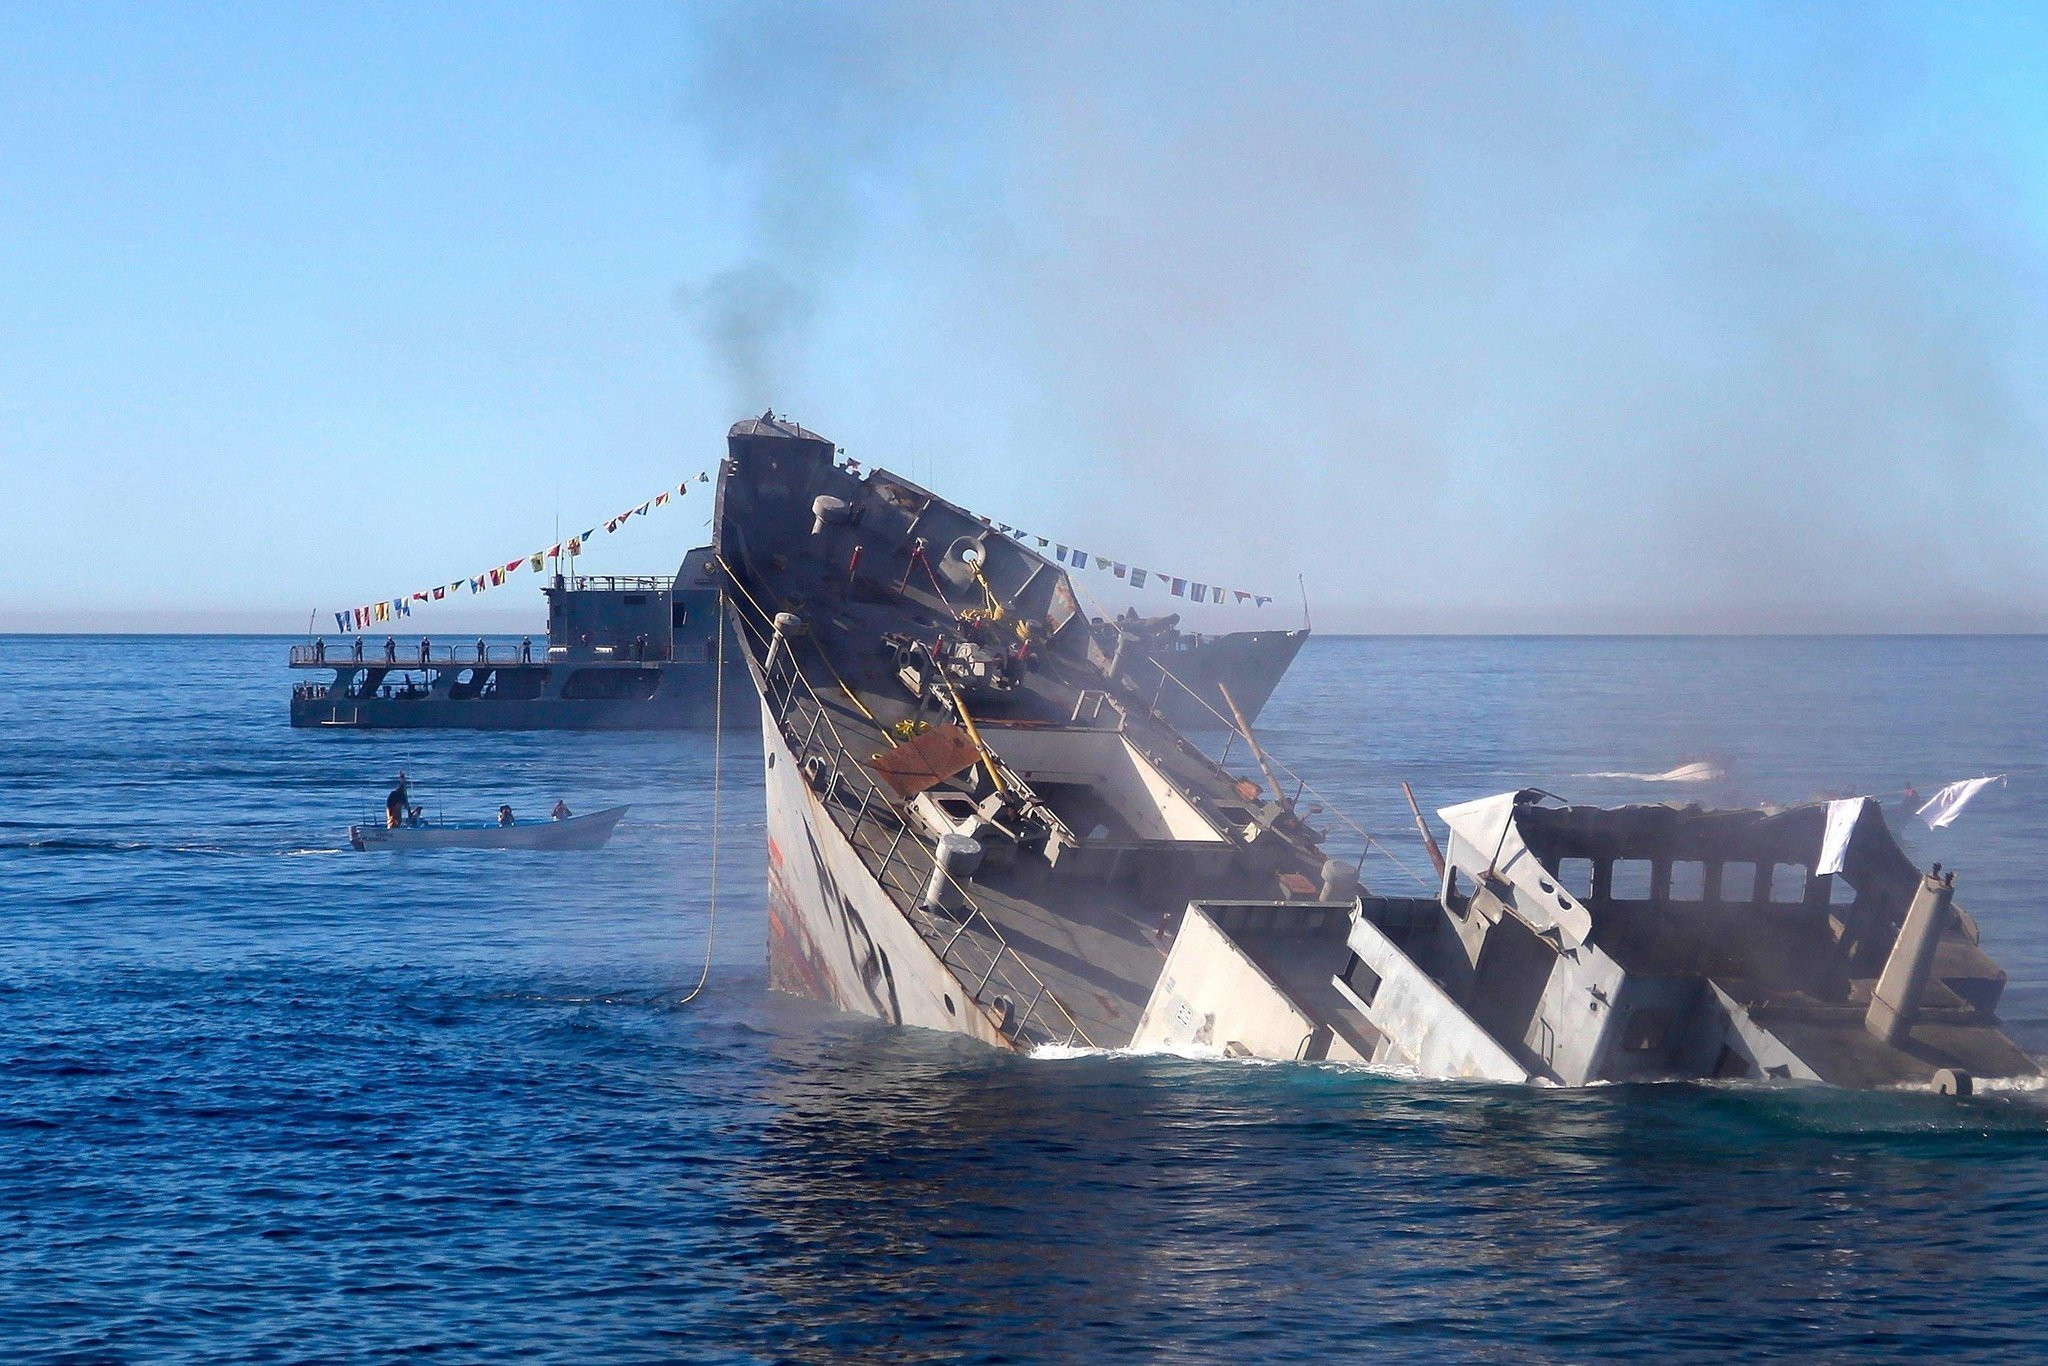 baja beach chairs ergonomic chair price sunken navy boat to become baja's first artificial reef - the san diego union-tribune